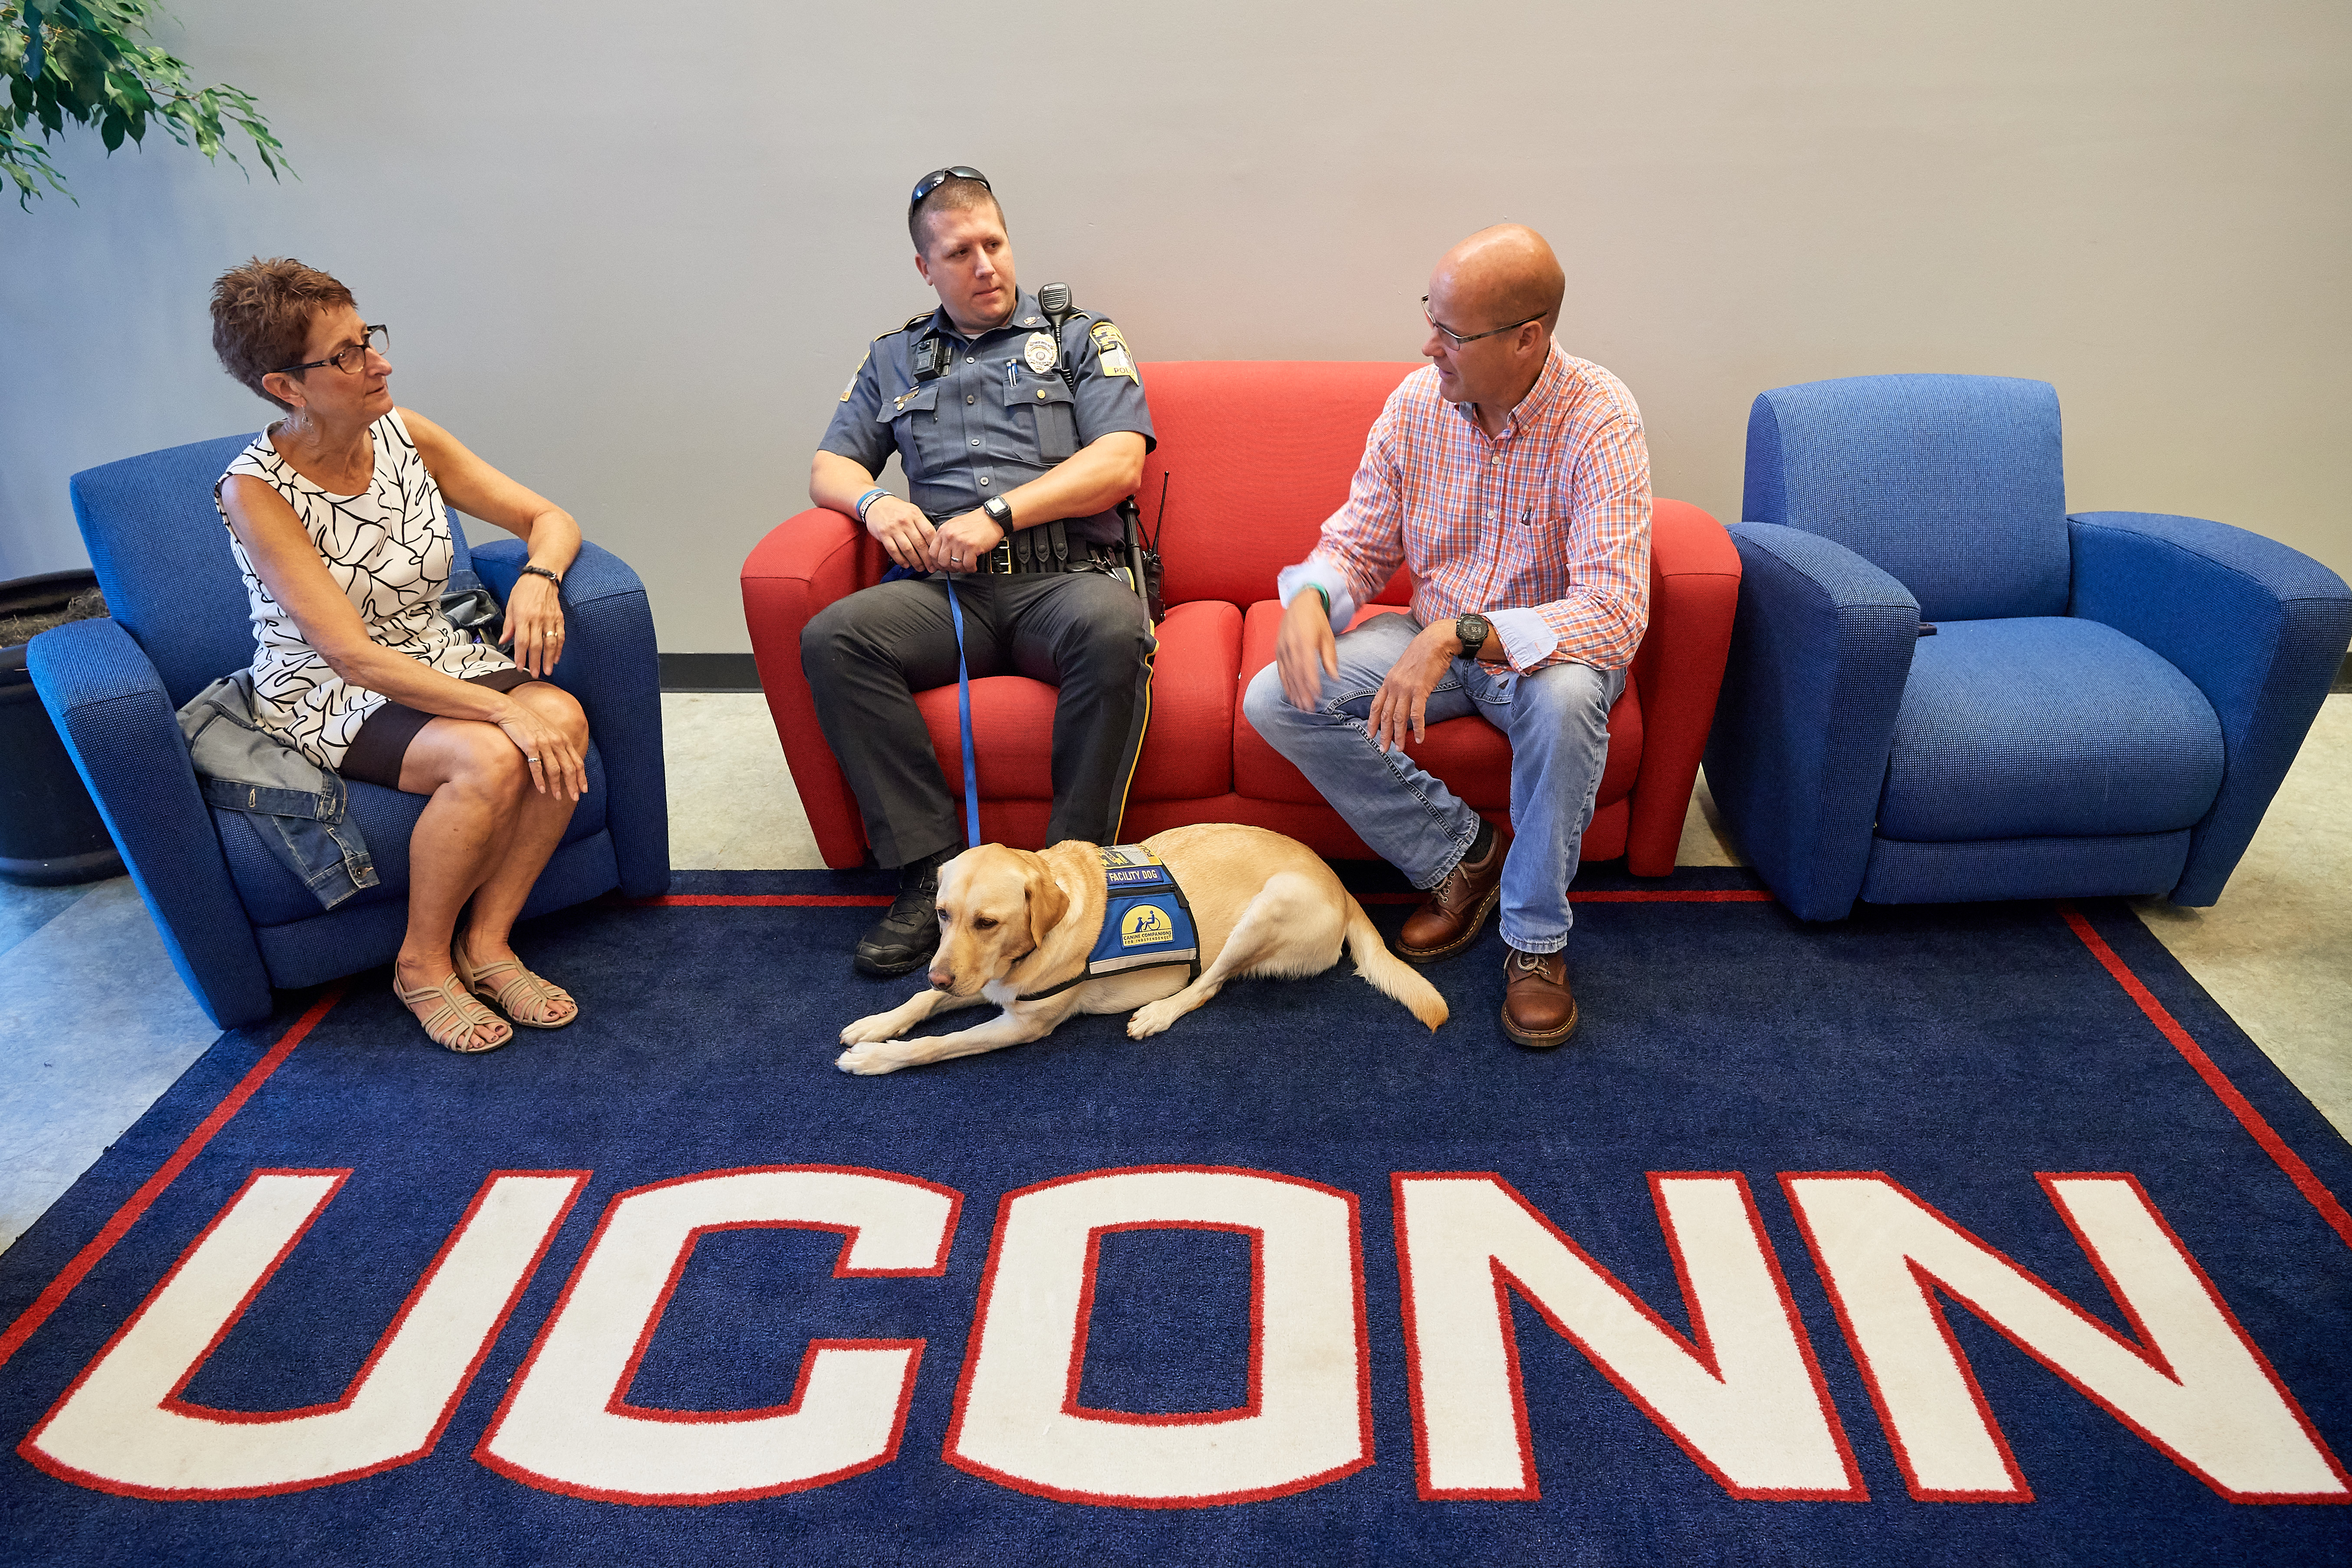 Sharon Mendes, left, with Officer Justin Cheney '07 (CLAS) and the police department's community outreach dog Tildy, and Paul Hanlon '15 (BGS), '17 MS, '19 MBA at the Student Union on Sept. 18, 2018. (Peter Morenus/UConn Photo)